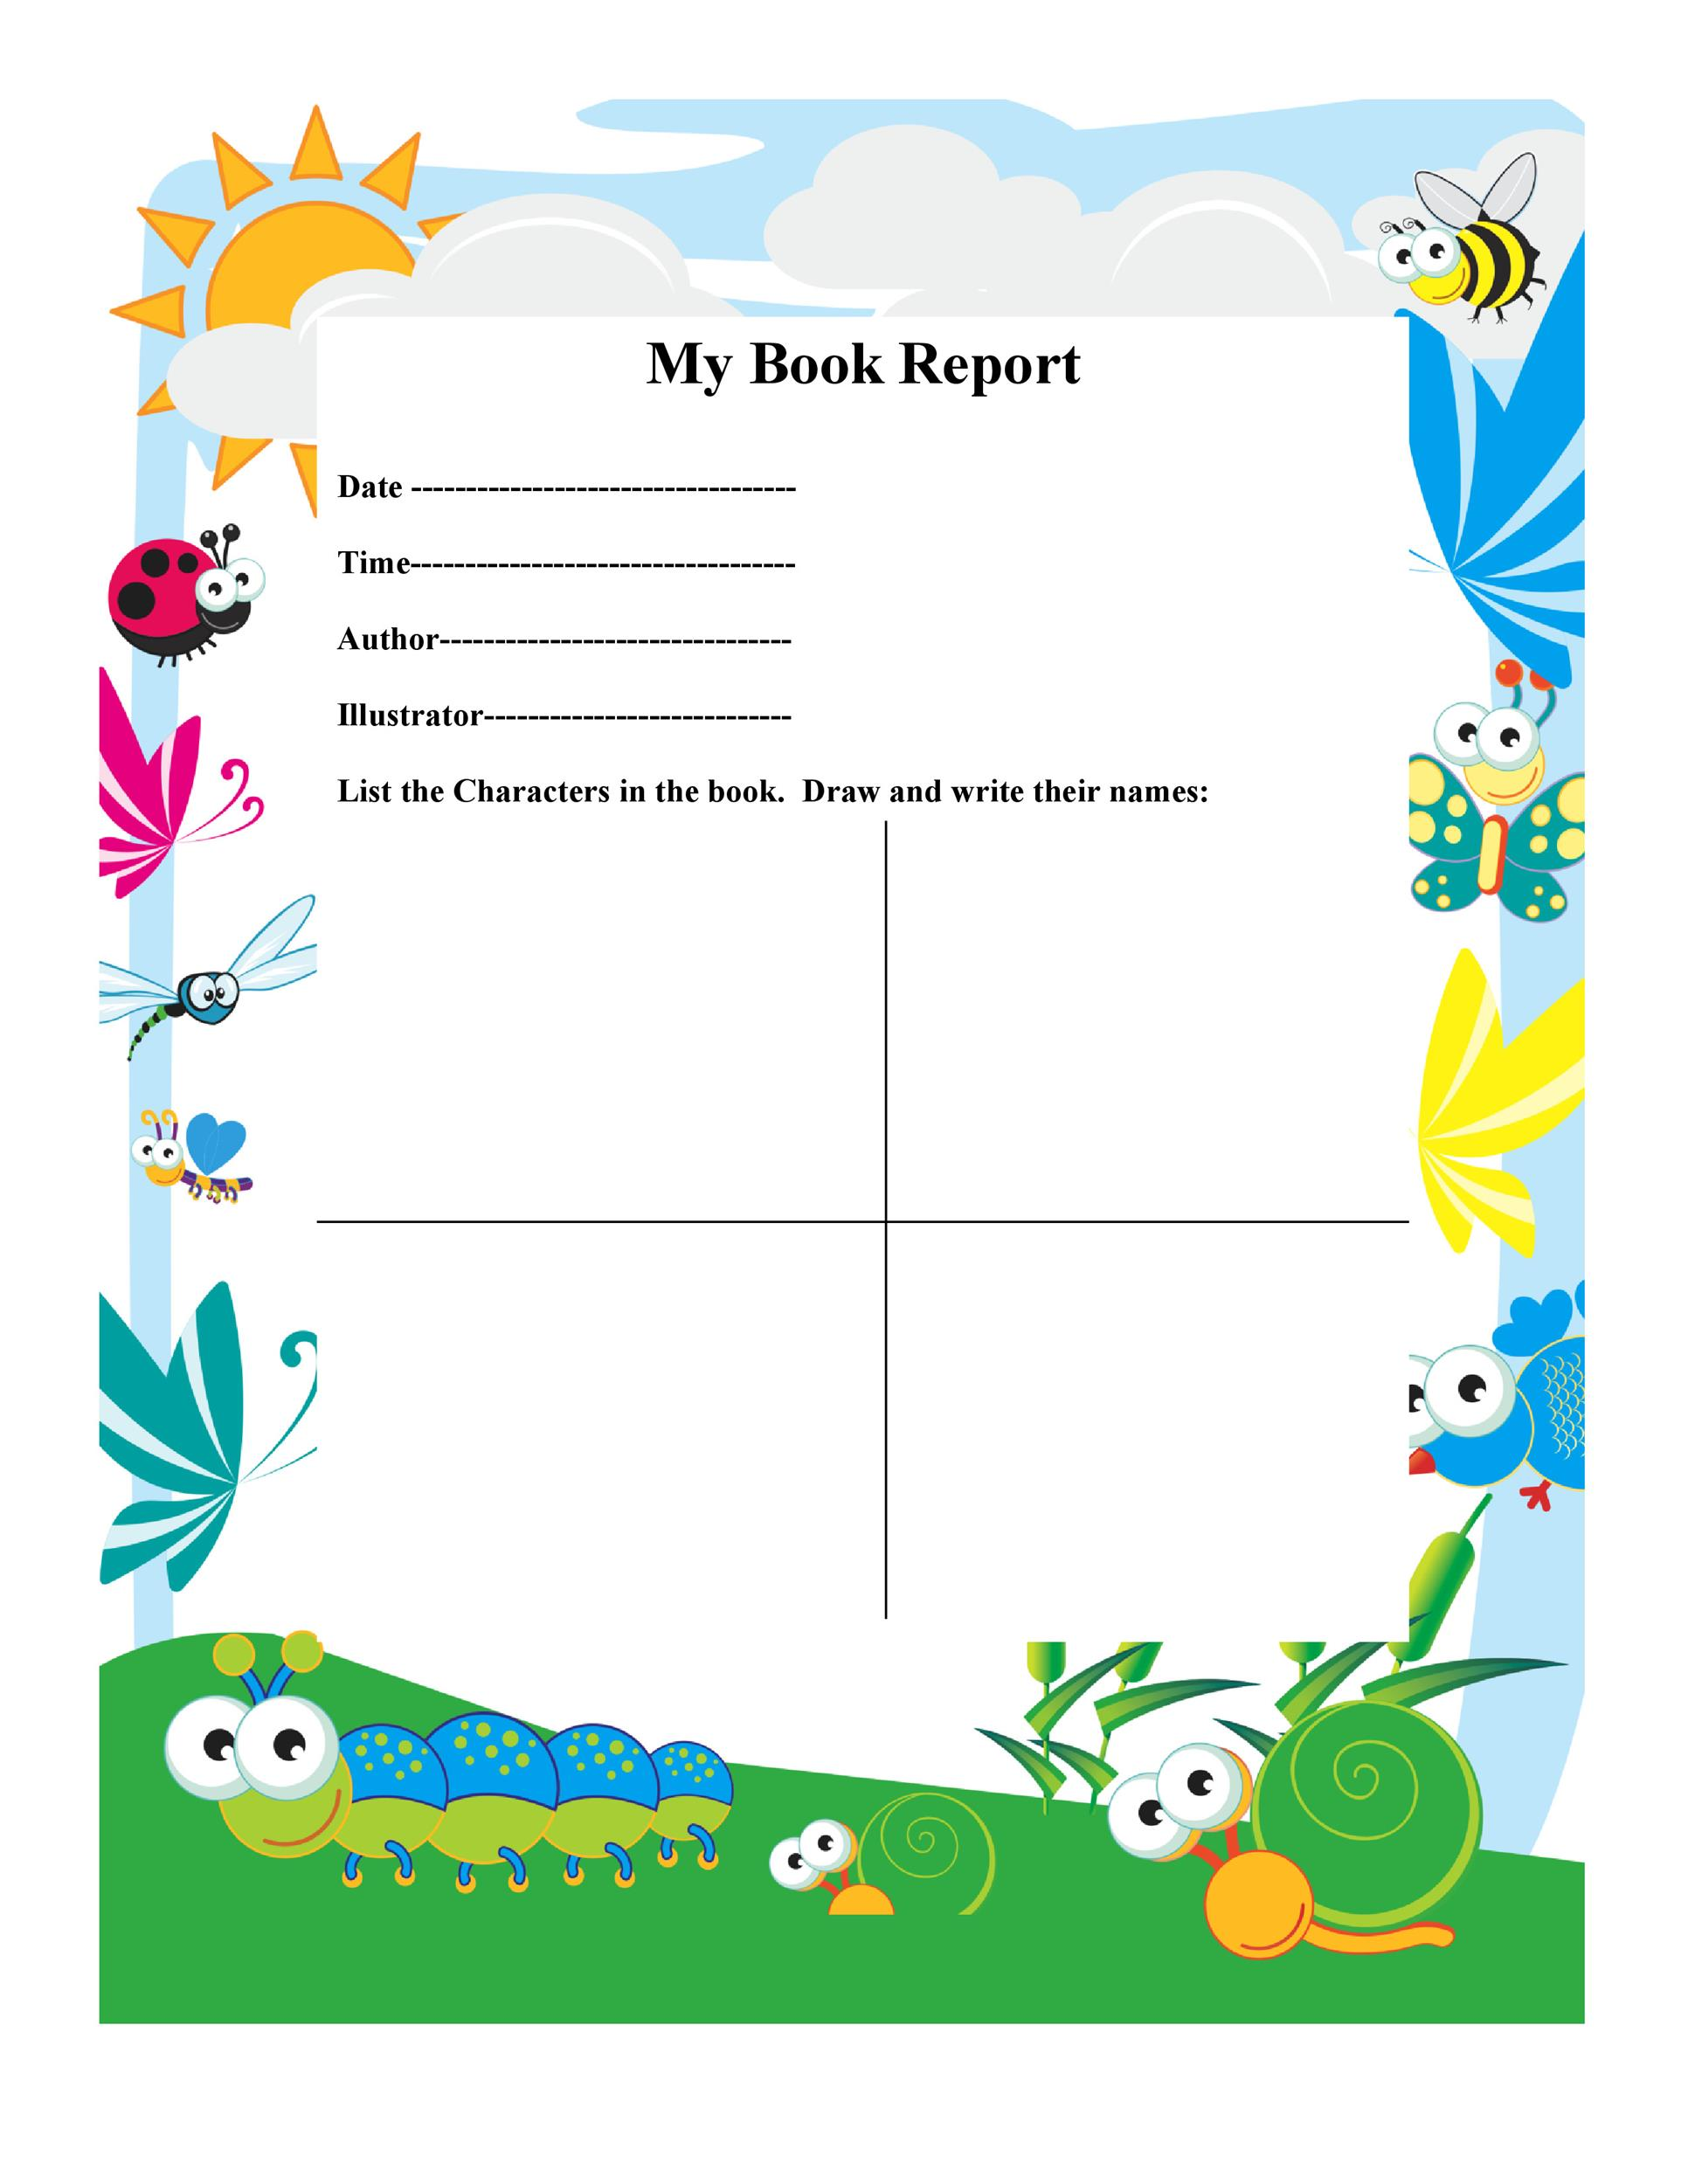 Different book reports